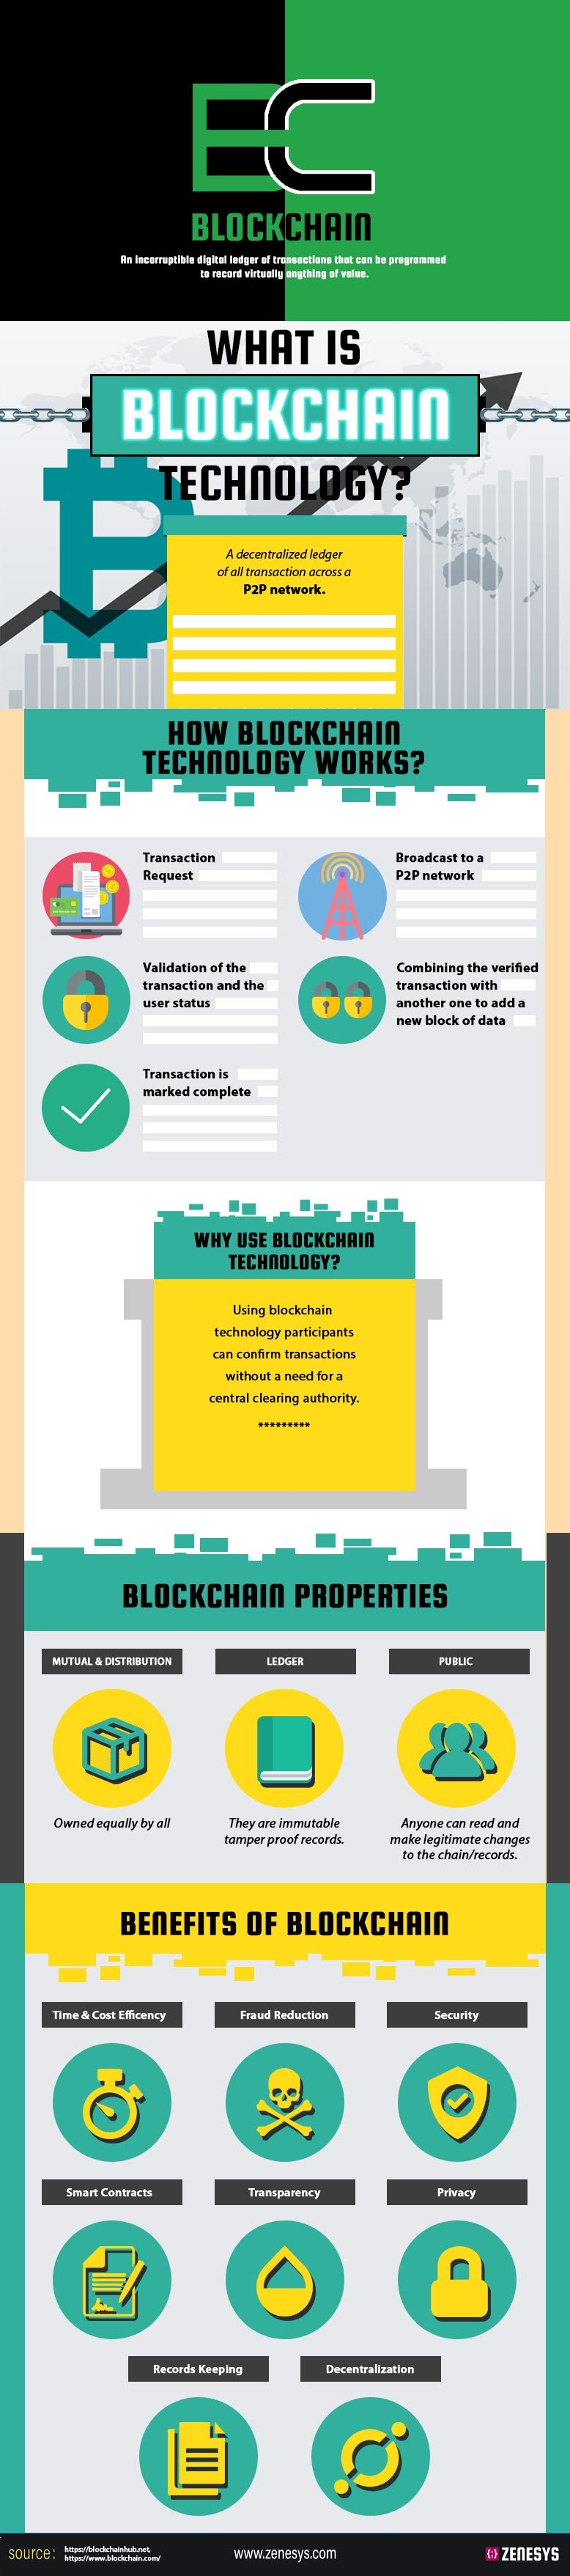 what-is-blockchain-technology-infographic